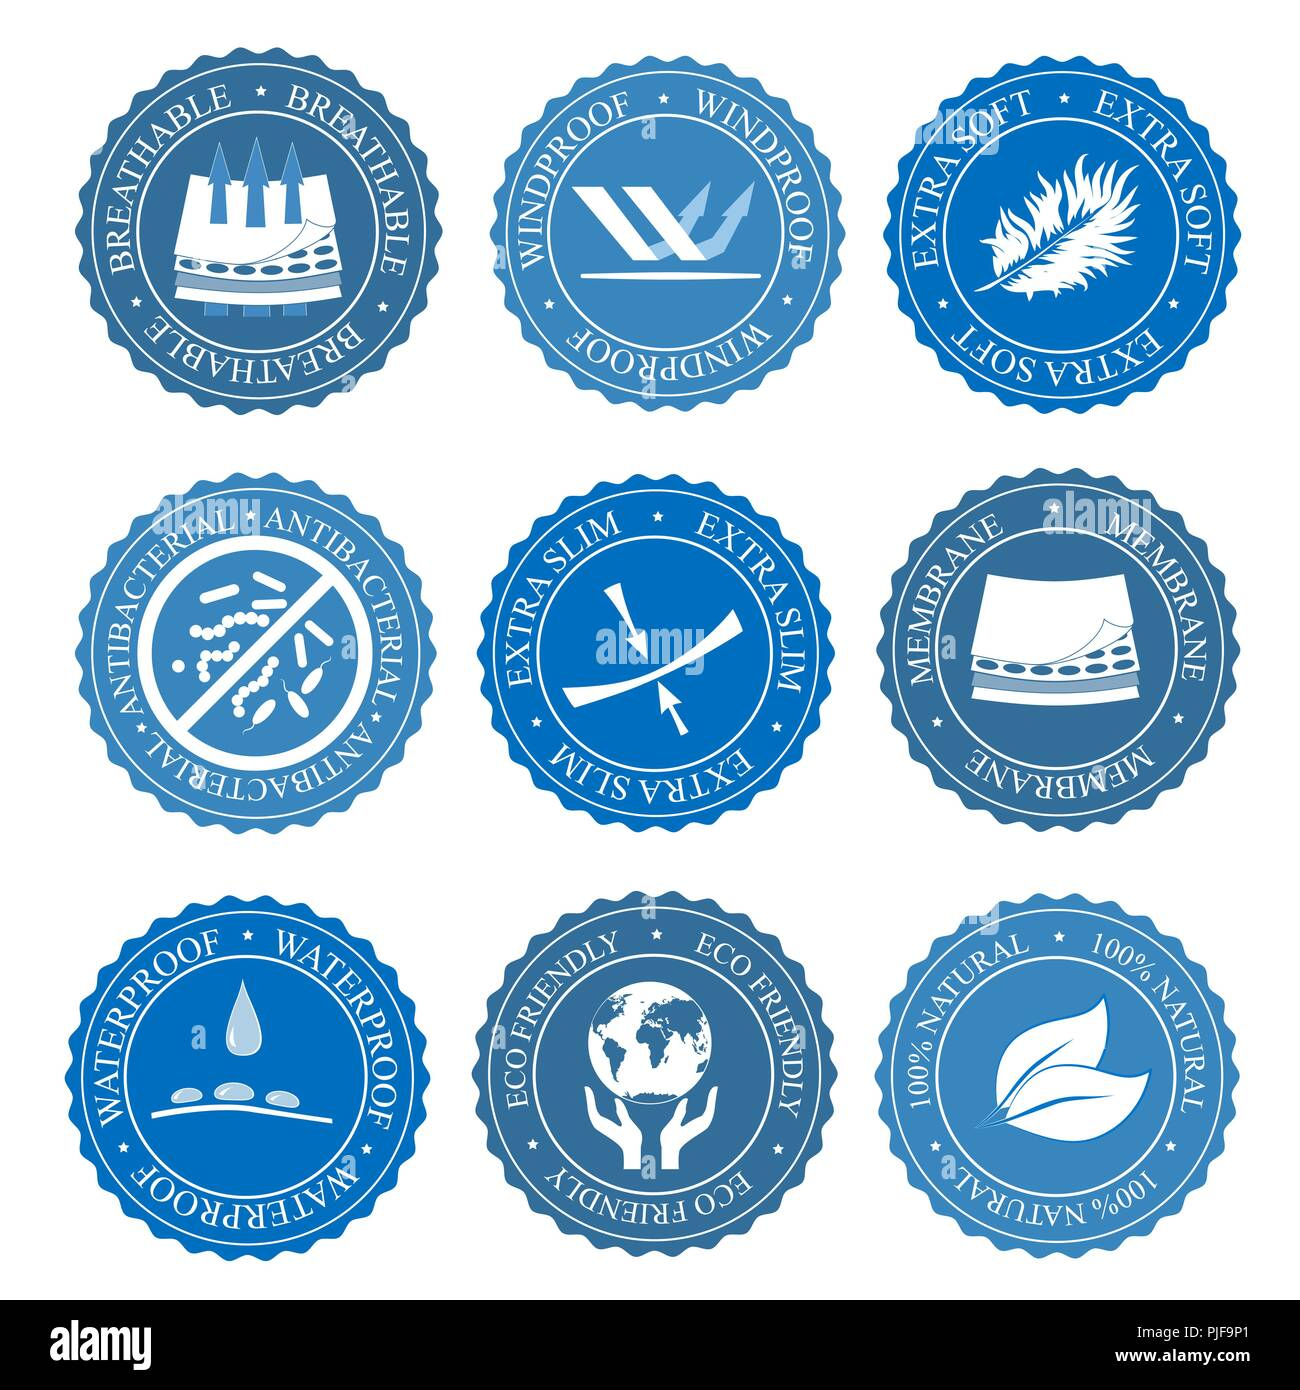 Vector icons set of fabric features. Wind proof, antibacterial, waterproof, membrane, extra soft, and breathable wear labels. Textile industry pictogr - Stock Image